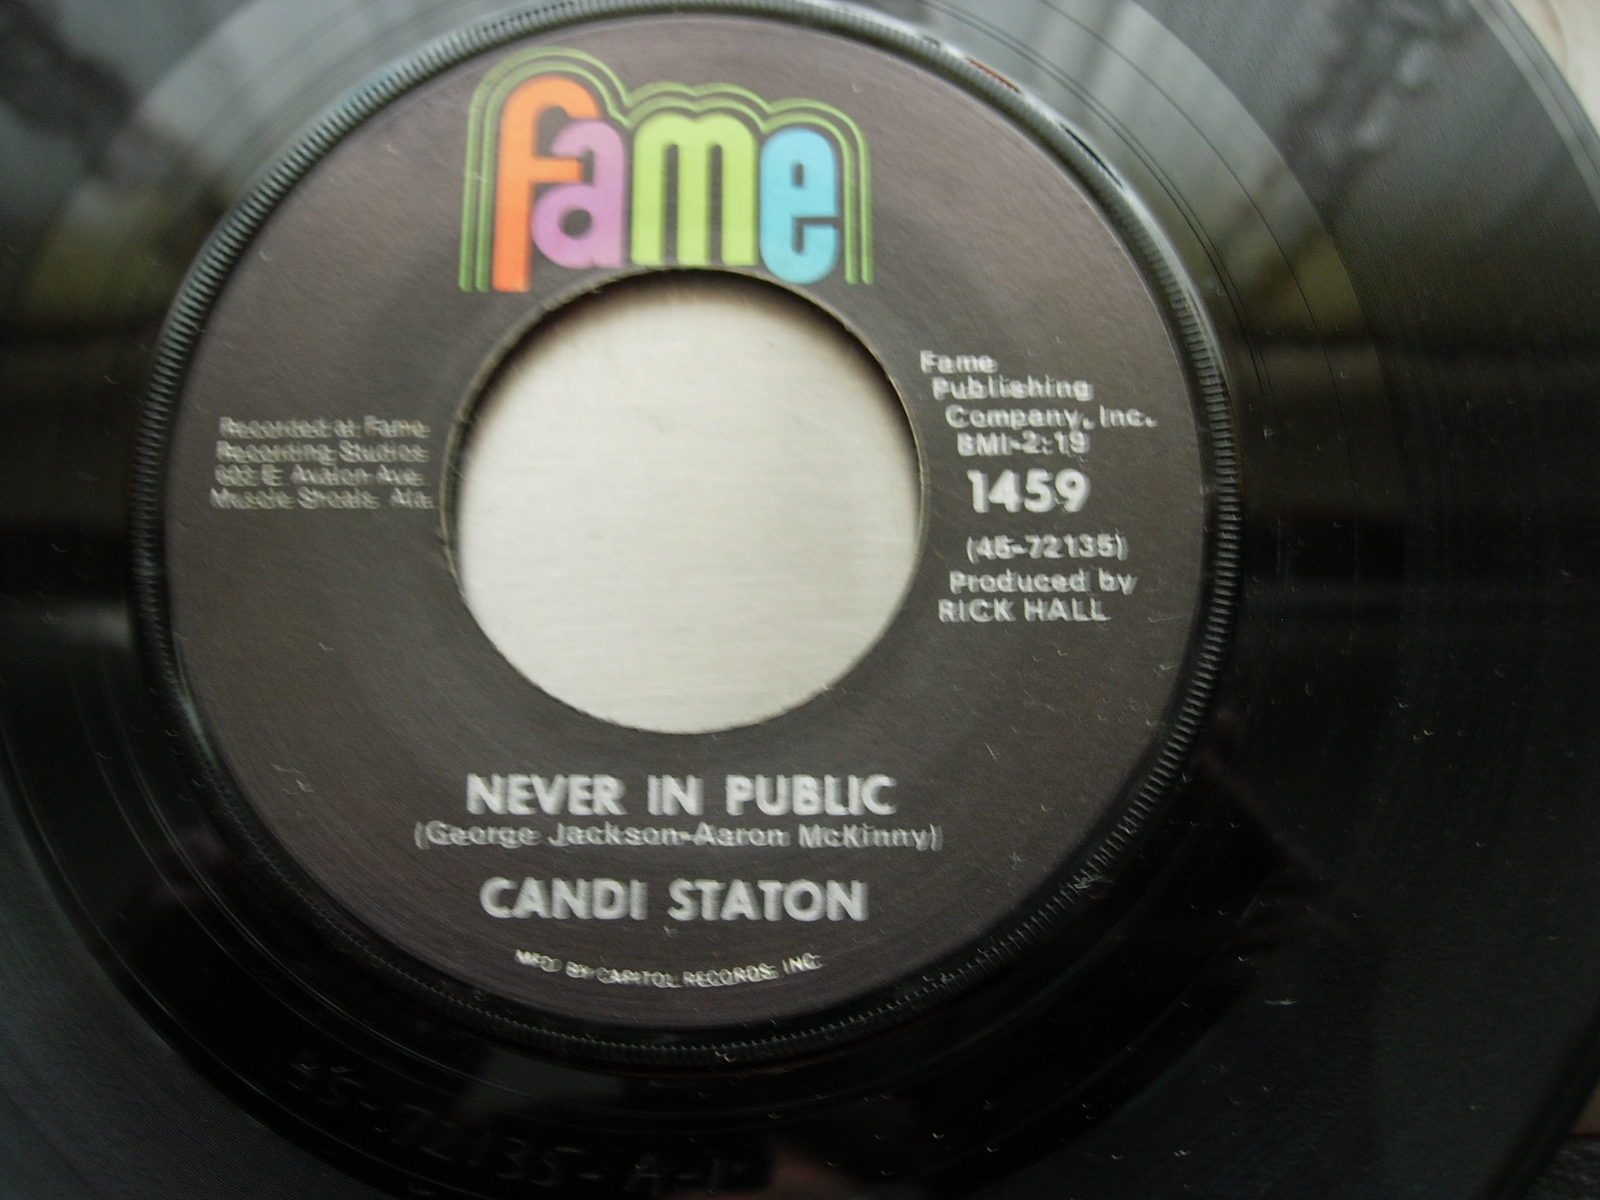 Candi Staton - You Don't Love Me No More / Never In Public - Fame Records 1459